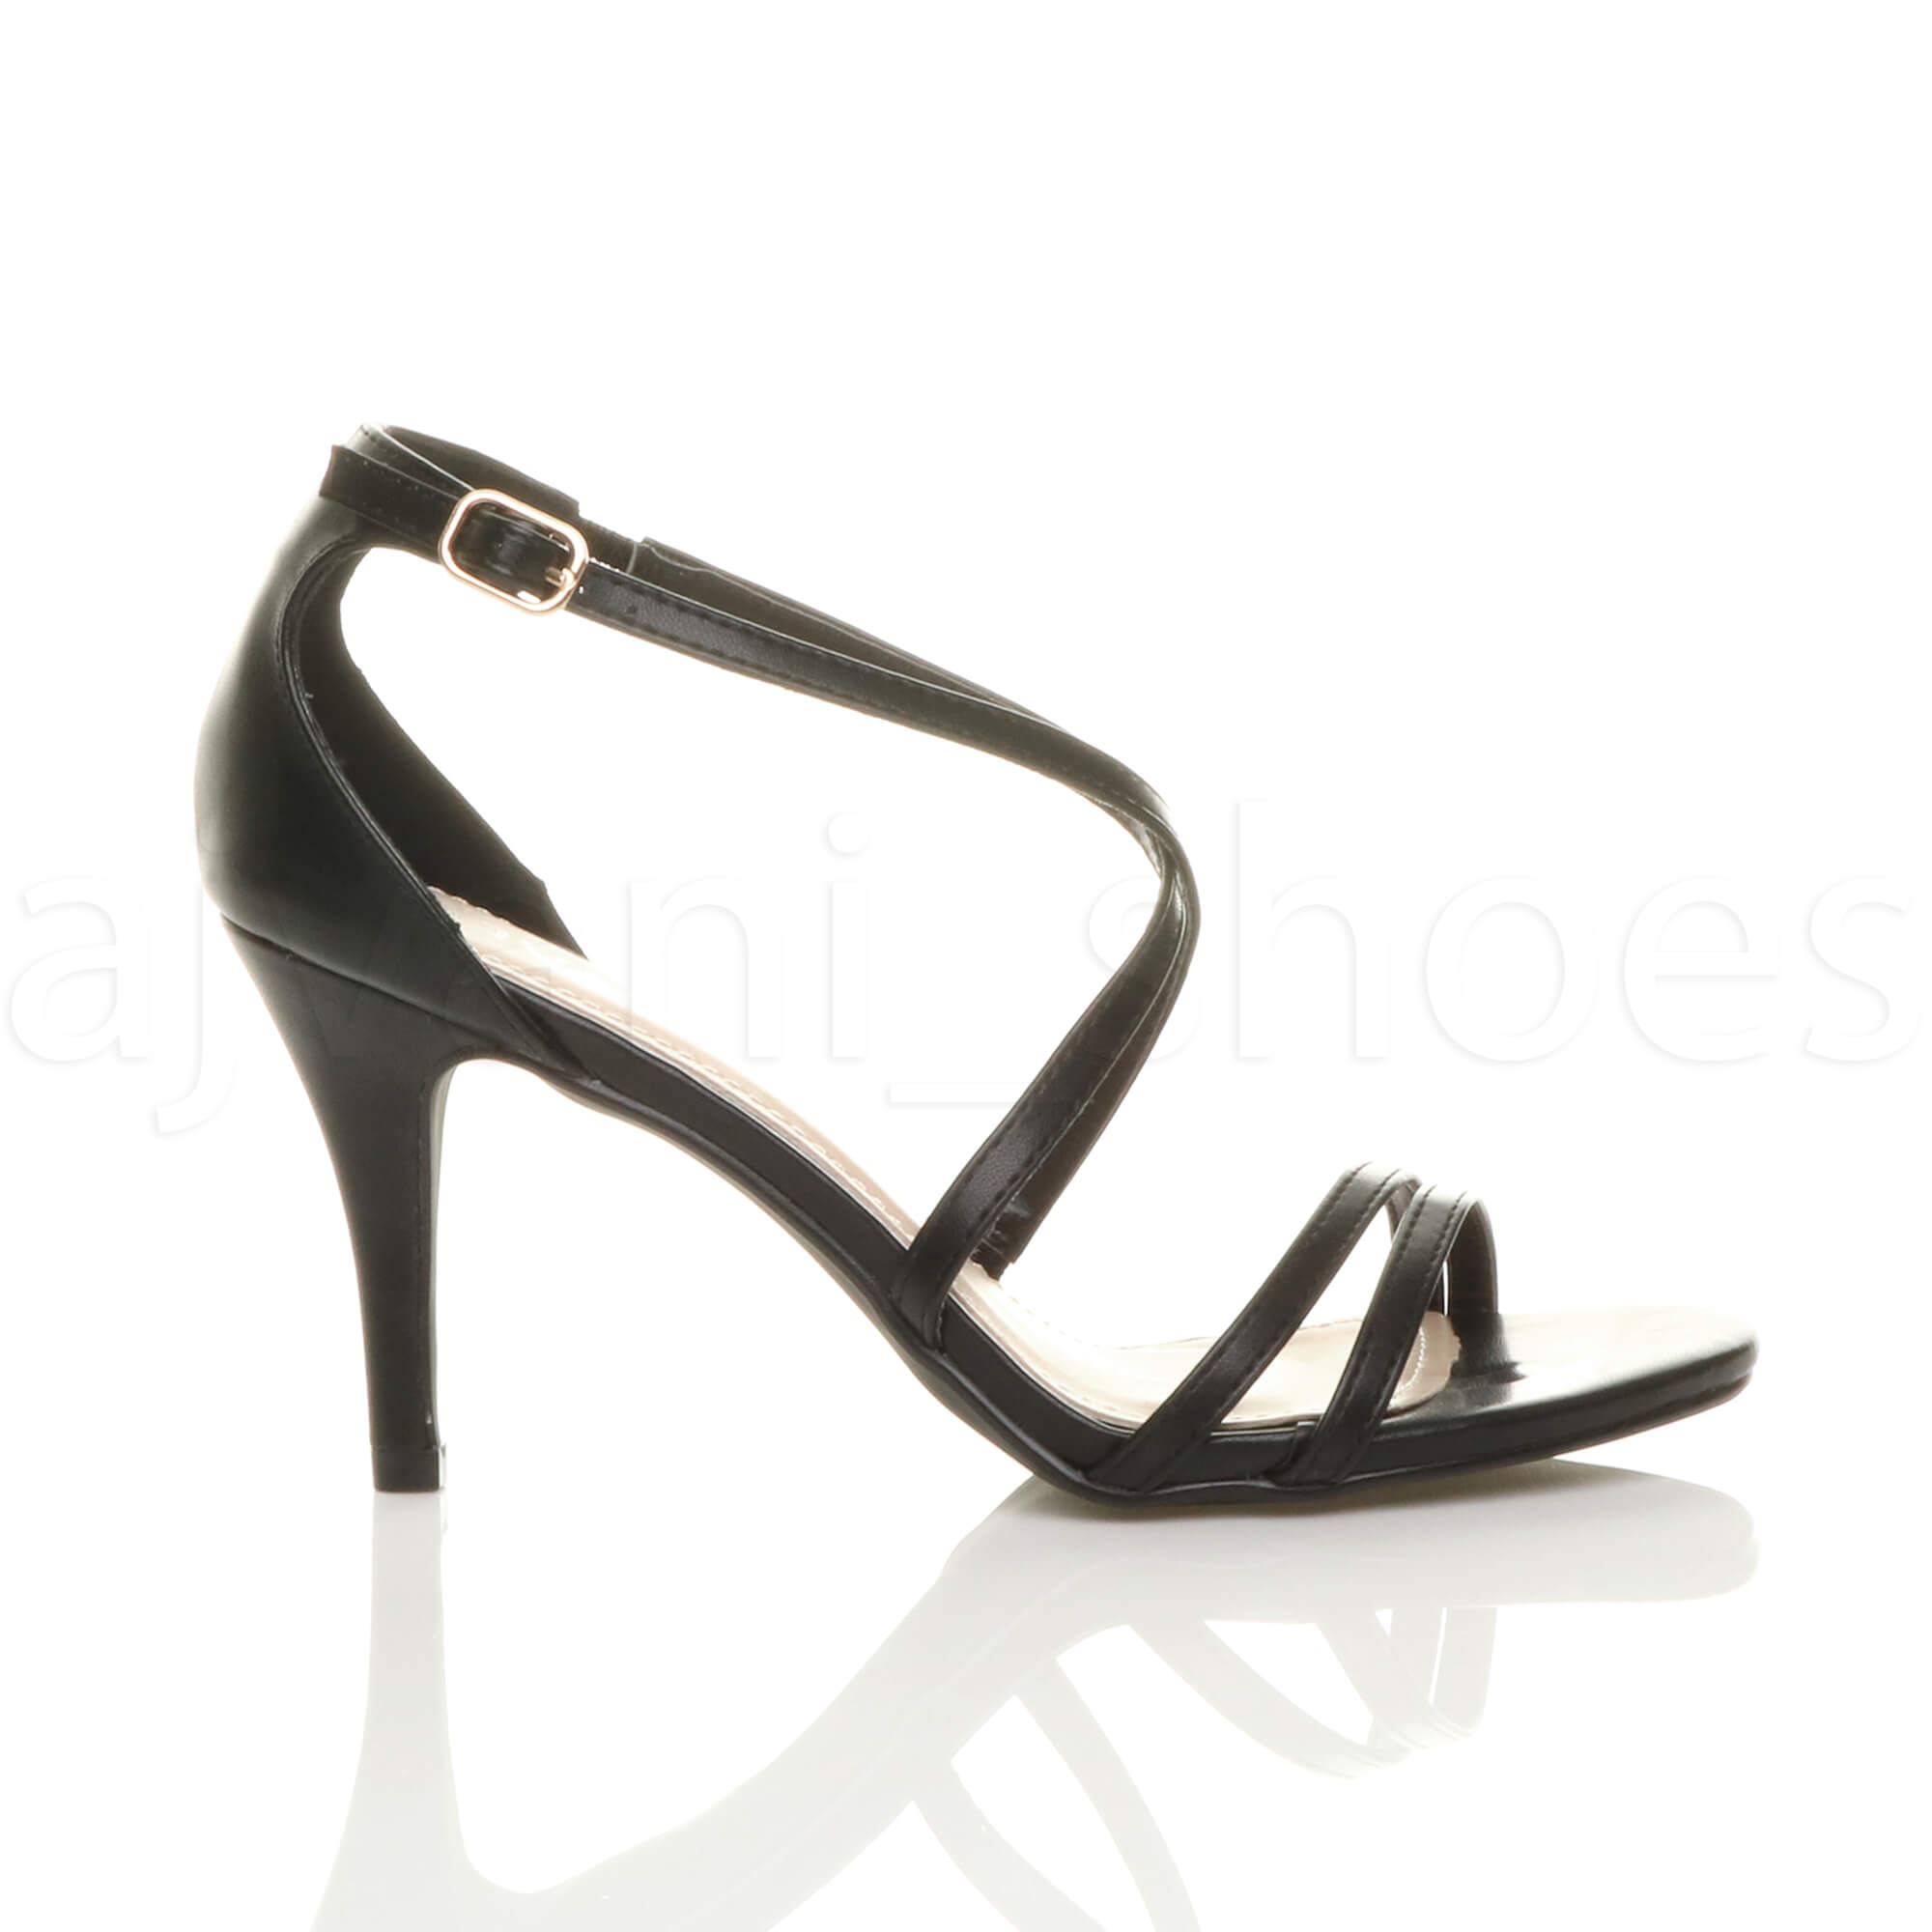 WOMENS-LADIES-MID-HIGH-HEEL-STRAPPY-CROSSOVER-WEDDING-PROM-SANDALS-SHOES-SIZE thumbnail 17